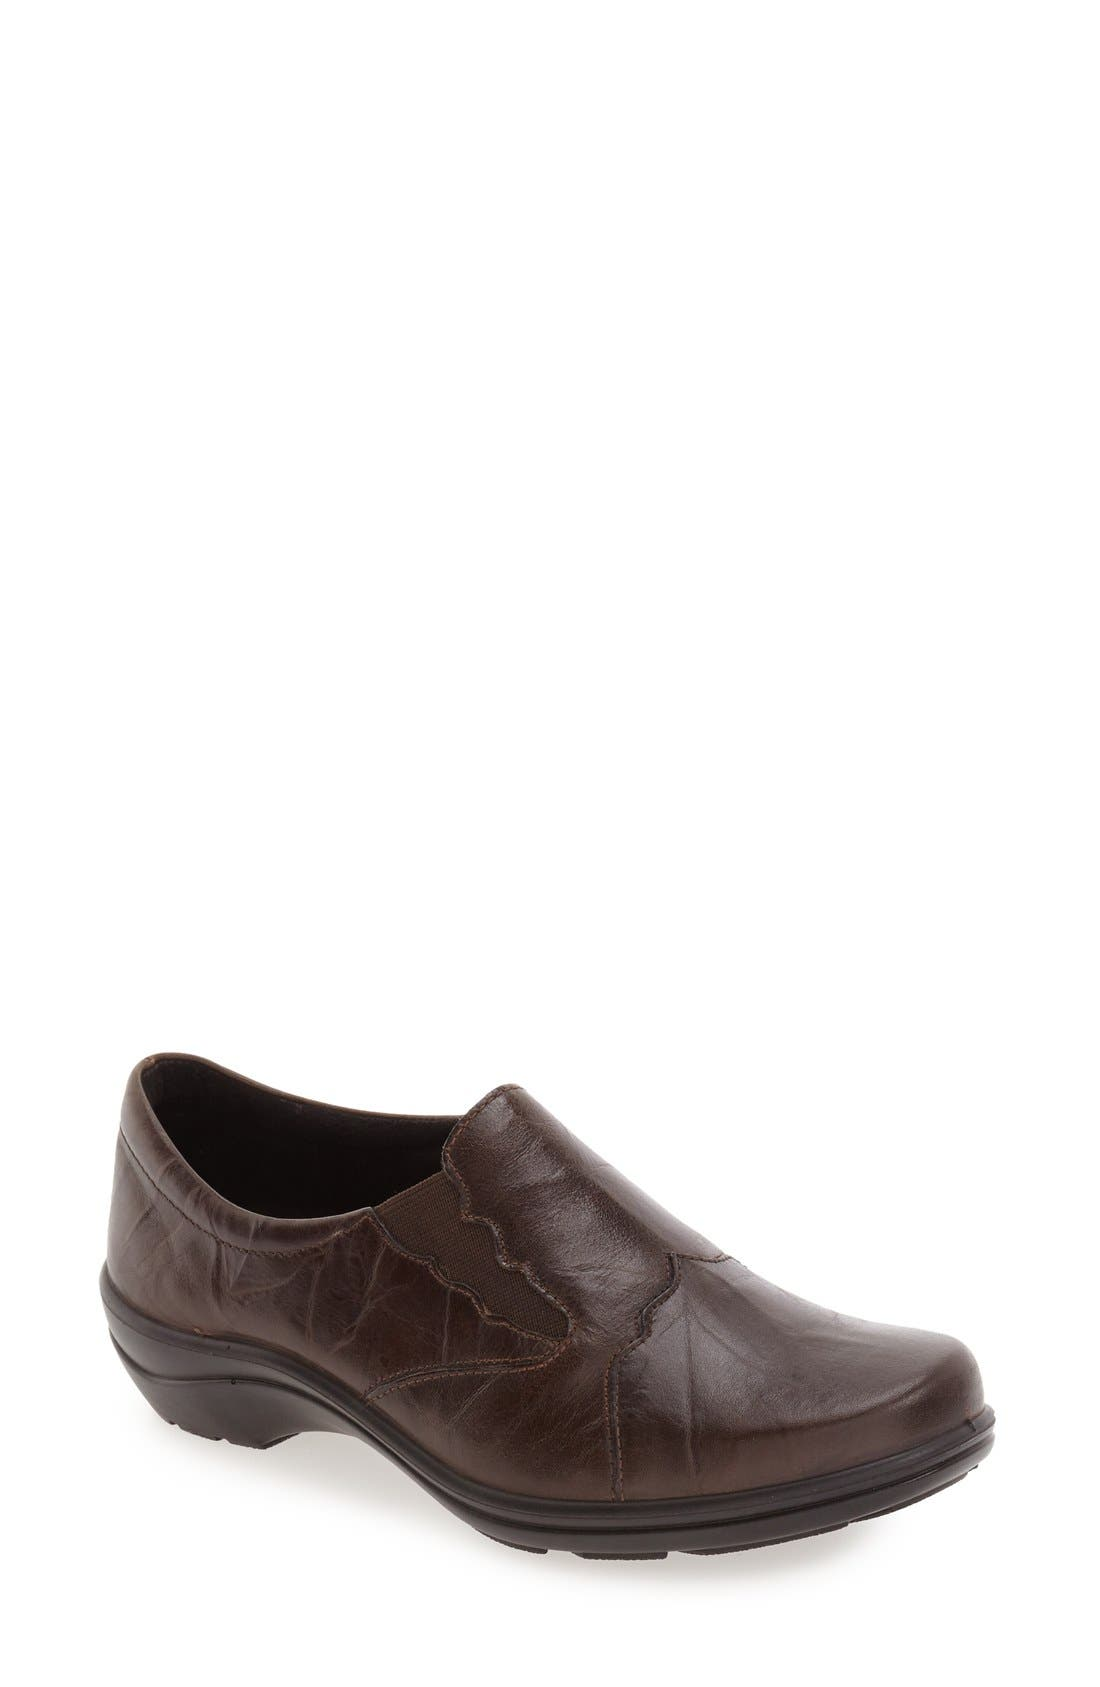 'Cassie 24' Flat,                         Main,                         color, TARTUFFO LEATHER